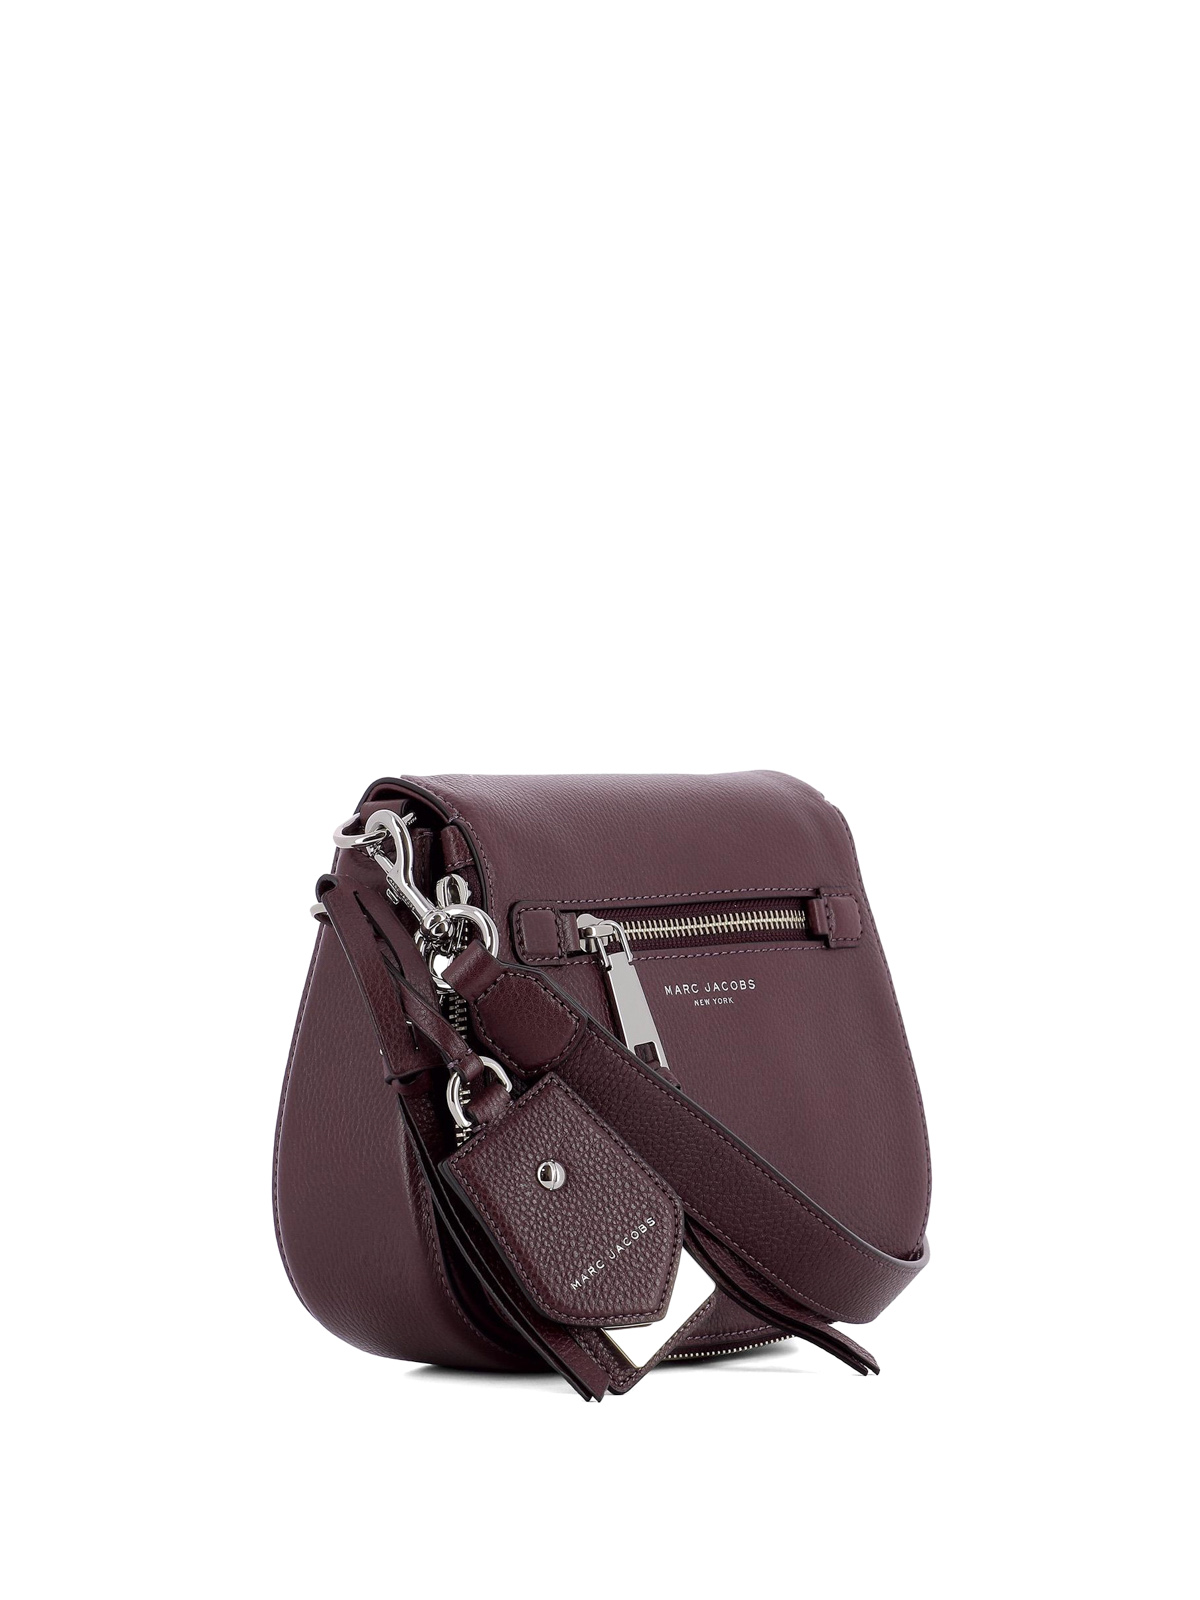 0b70892361 MARC JACOBS: borse a tracolla online - Borsa bisaccia Recruit Nomad Small